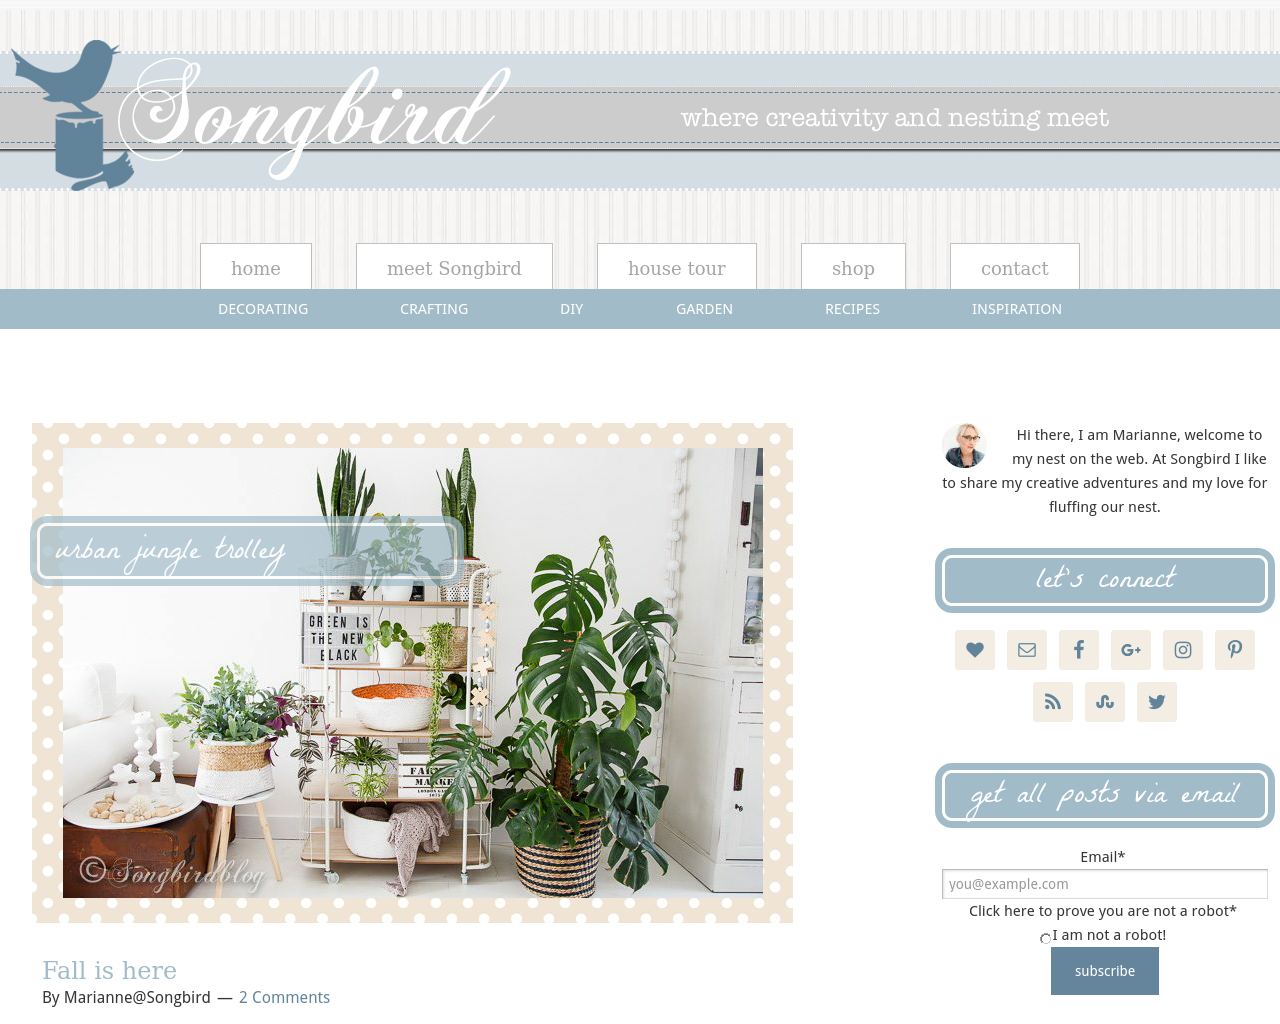 Marianne@Songbird-Advertising-Reviews-Pricing